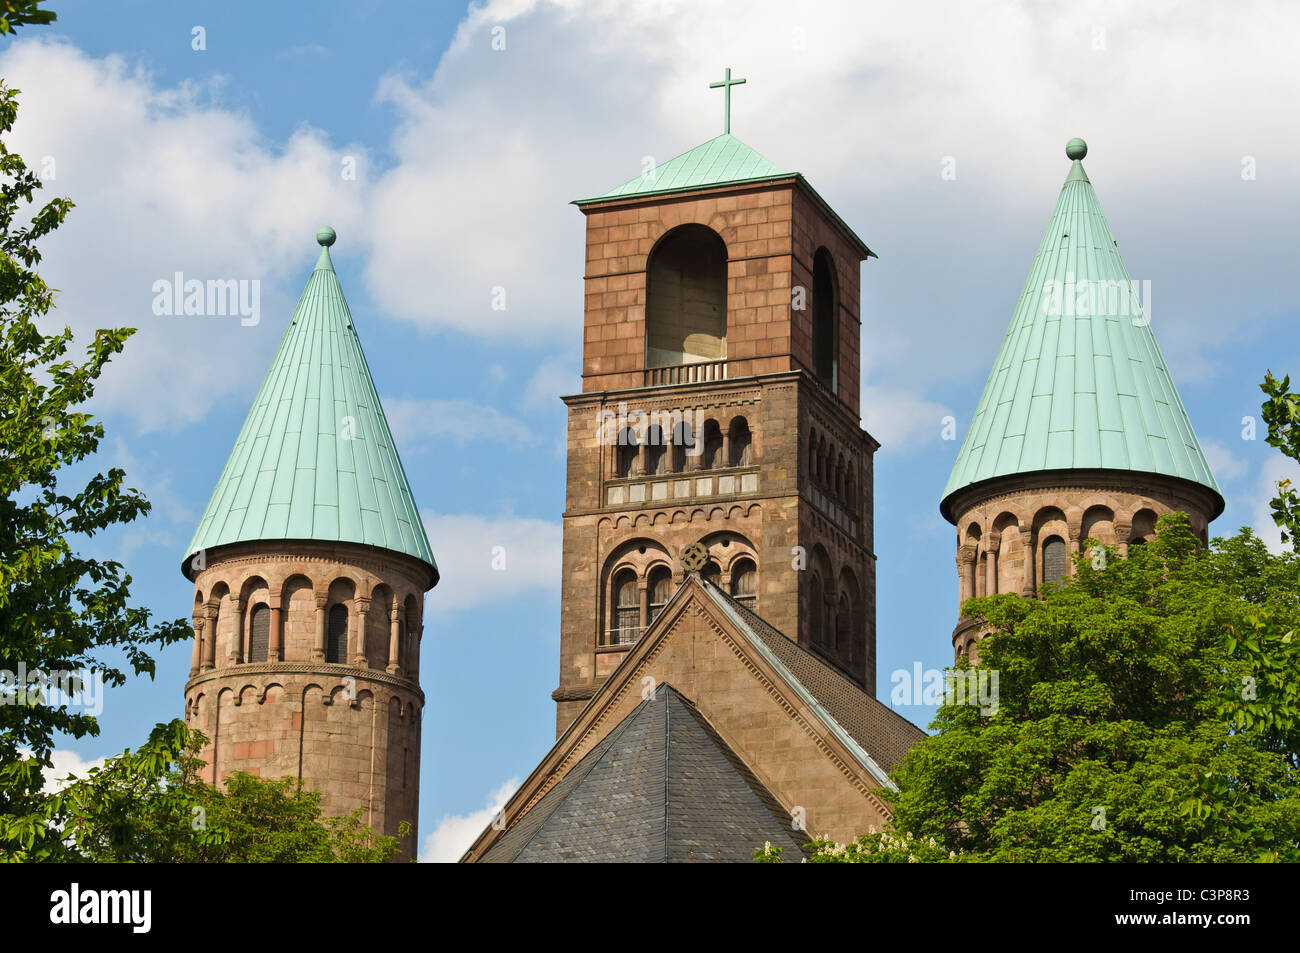 Back view of Erlöserkirche of Essen, Germany - Stock Image